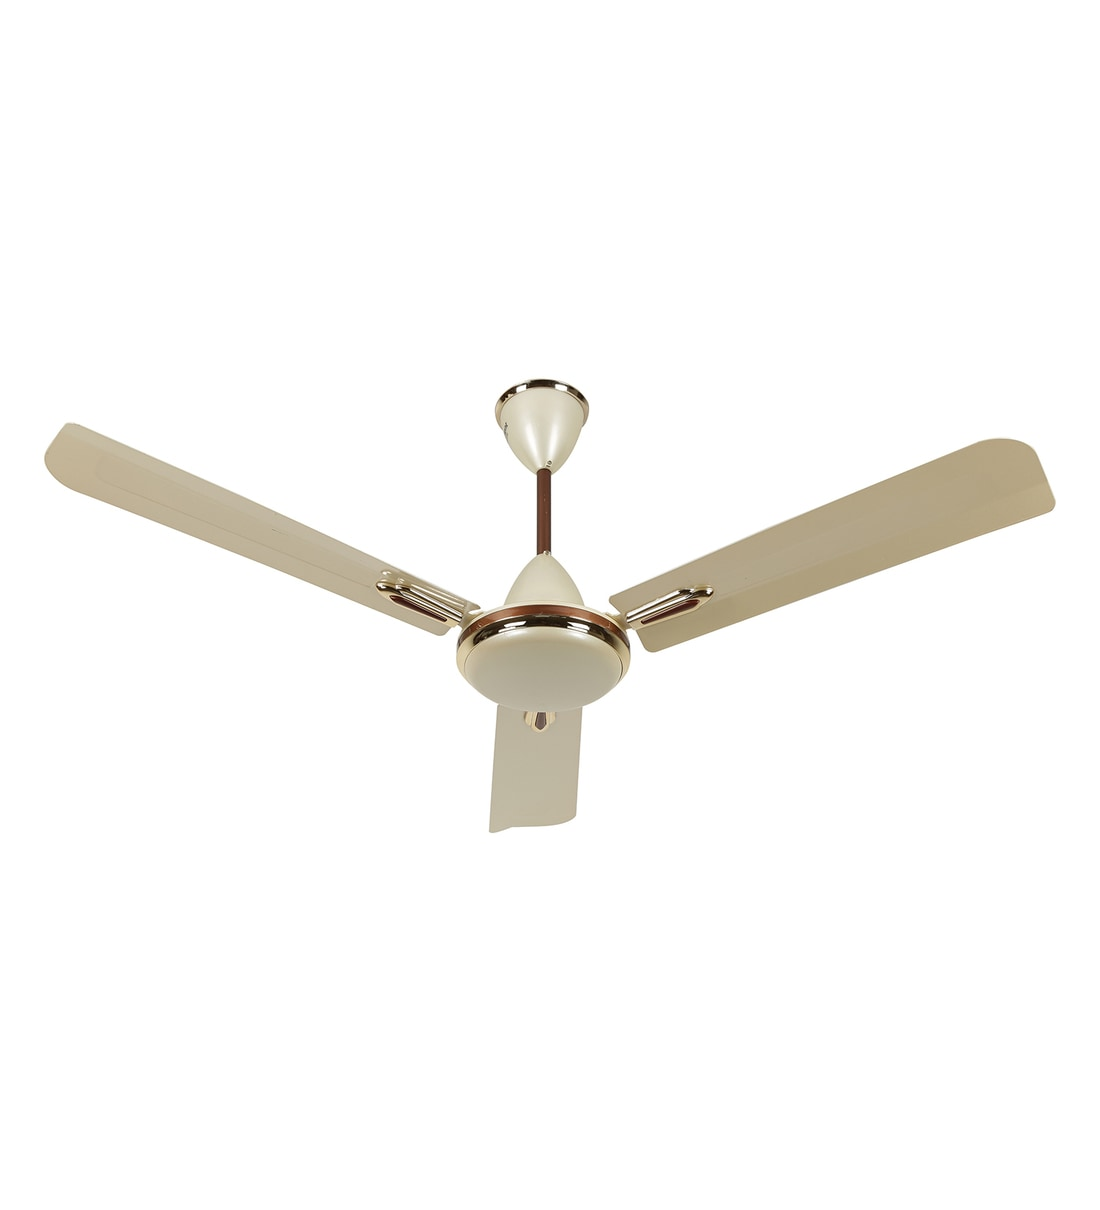 Buy Orient Quasar Ornamental 1200 Mm Metallic Ivory And Cherry Designer Ceiling Fan Online Ceiling Fans Fans Homeware Pepperfry Product